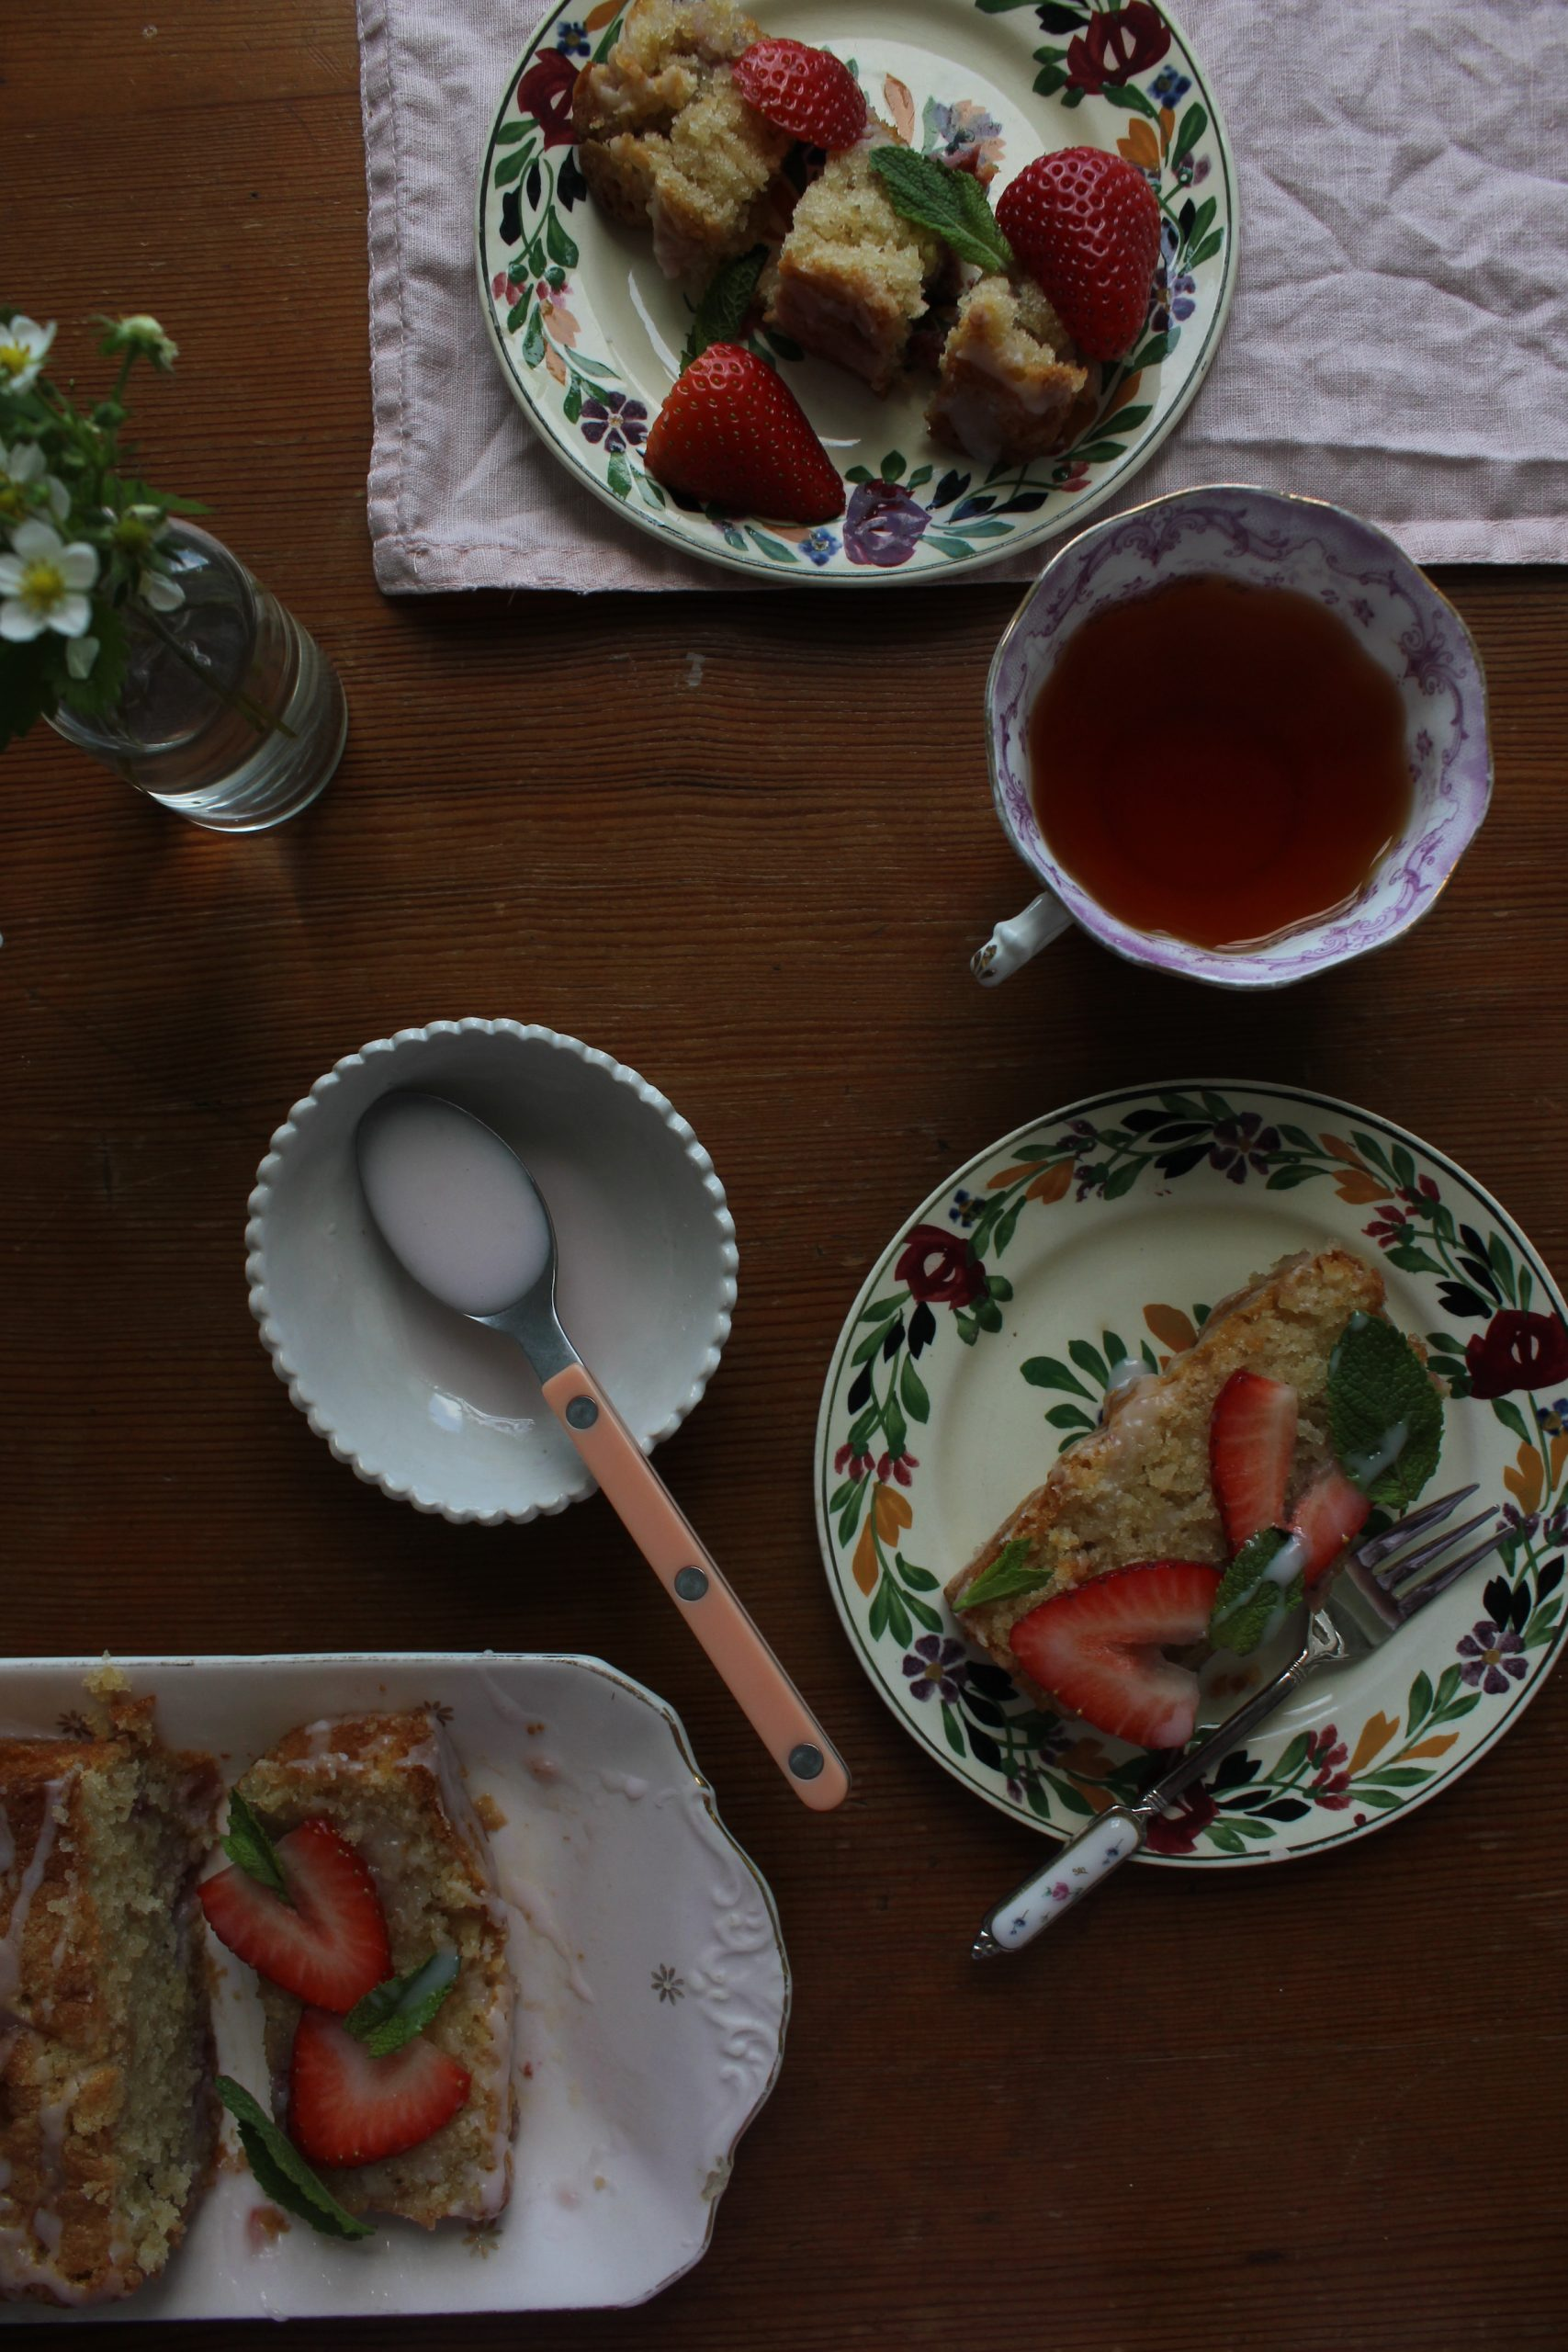 Strawberry and Mint Loaf Cake